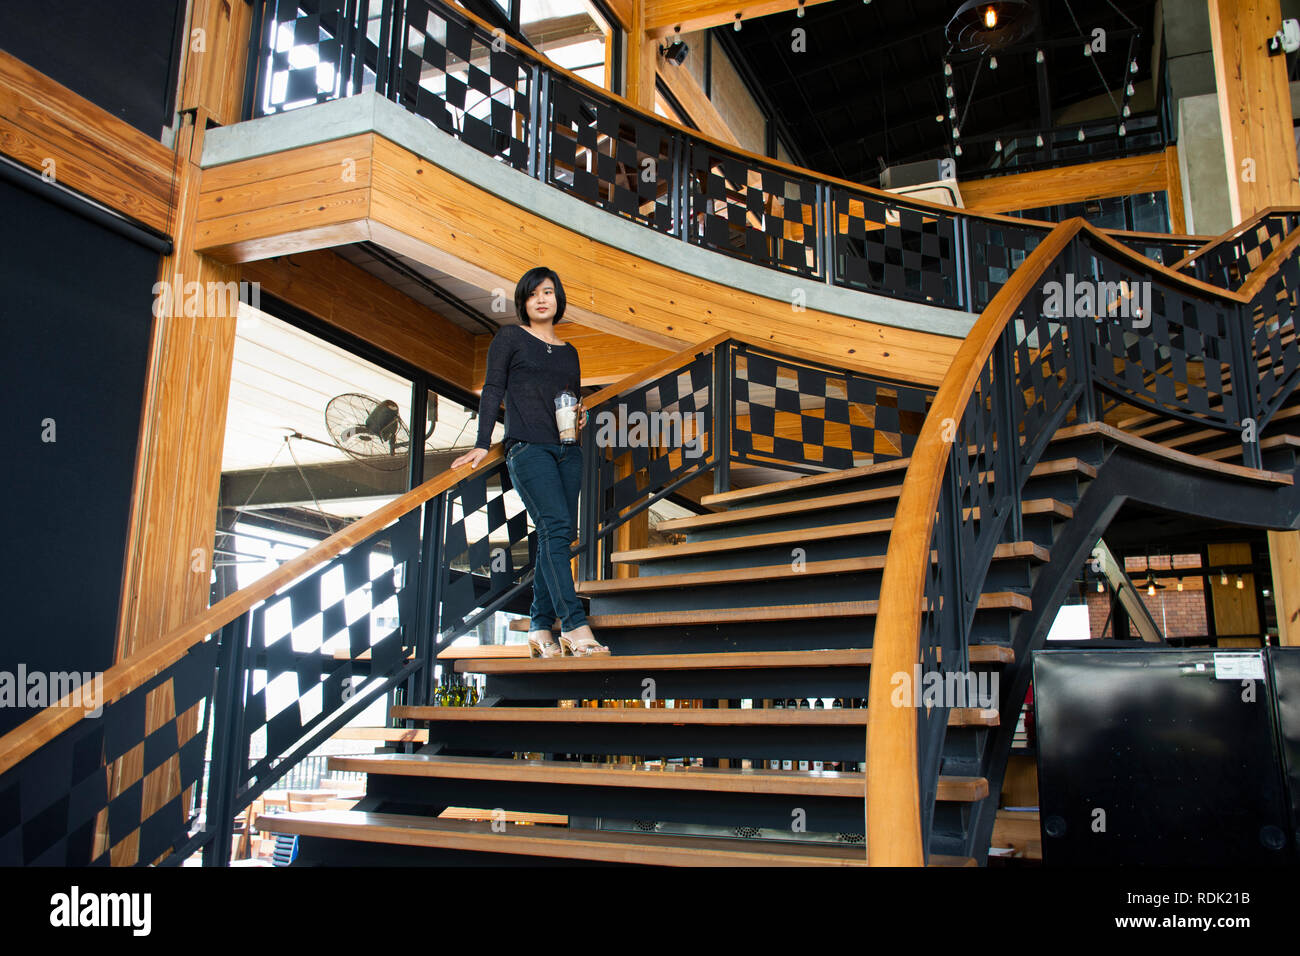 Travelers Thai Women Walking Up On Classic Wooden Stairs In Modern And Luxury Restaurant In Bangkok Thailand Stock Photo Alamy